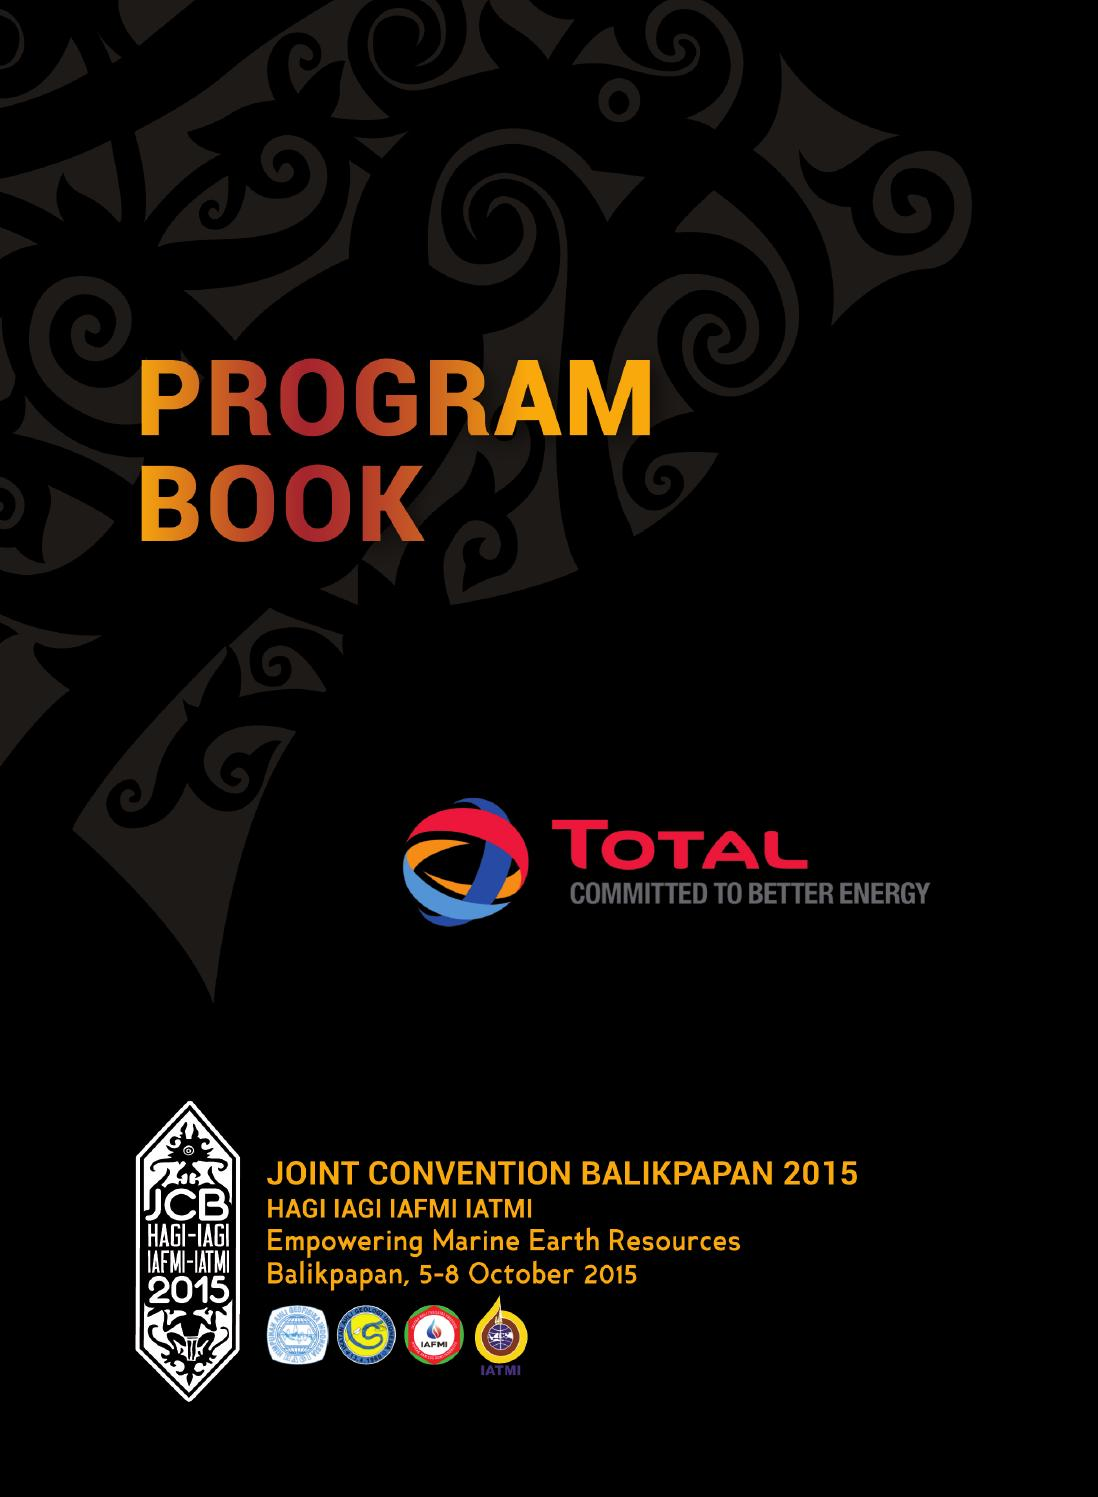 Book joint convention balikpapan 2015 by JCB2015 - issuu